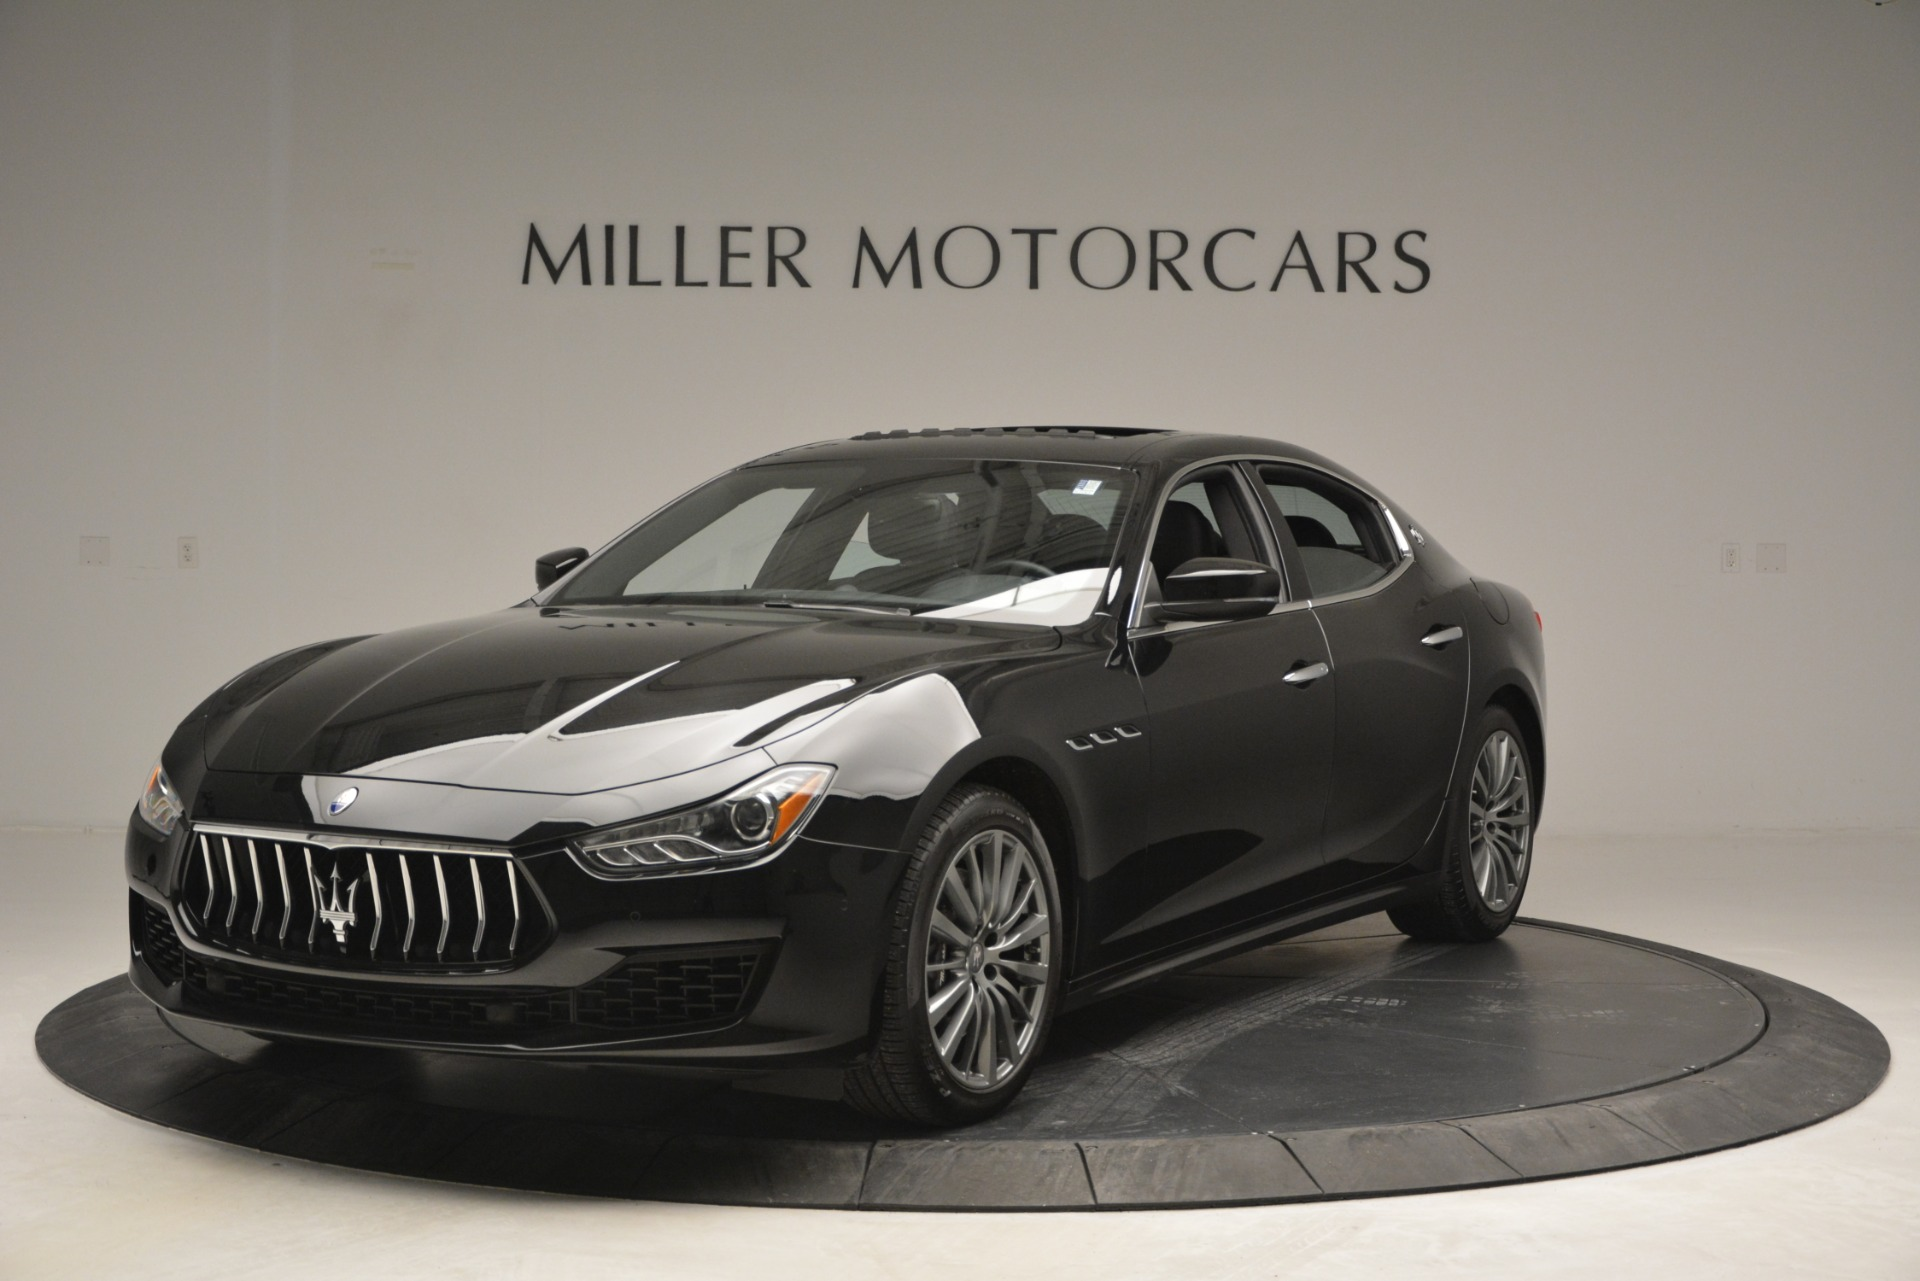 Used 2018 Maserati Ghibli S Q4 for sale Sold at Bentley Greenwich in Greenwich CT 06830 1